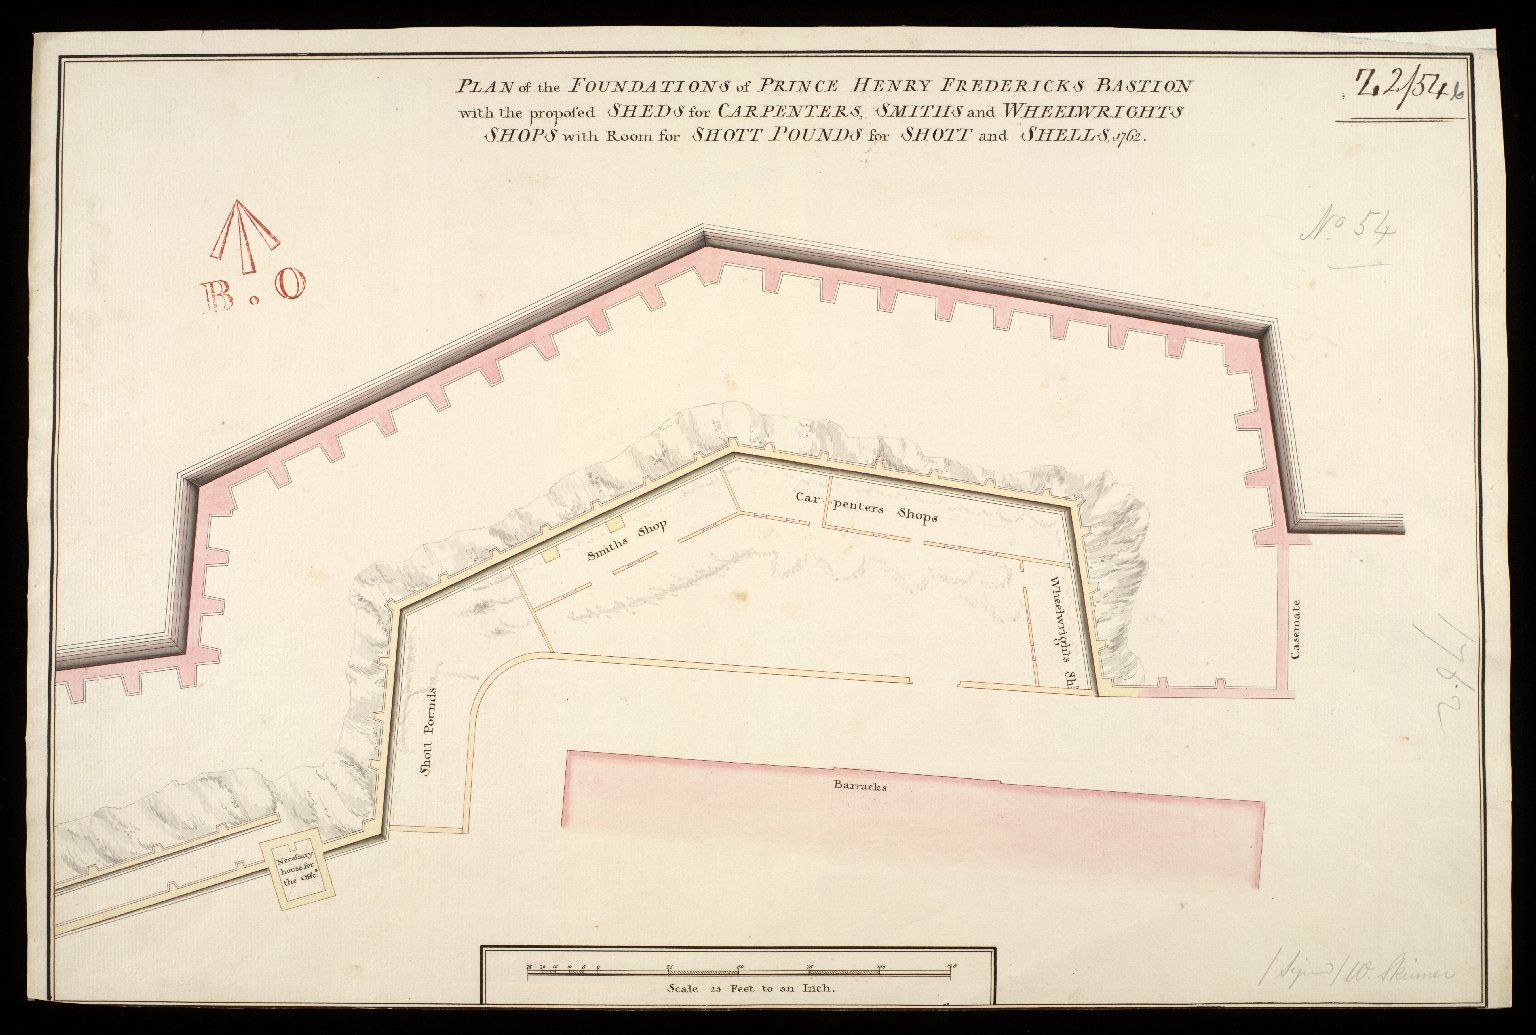 Plan of the foundations of Prince Henry Fredericks Bastion [copy] : with the proposed sheds for carpenters, smiths and wheelwrights shops with room for shott pounds for shott and shells 1762 [1 of 1]